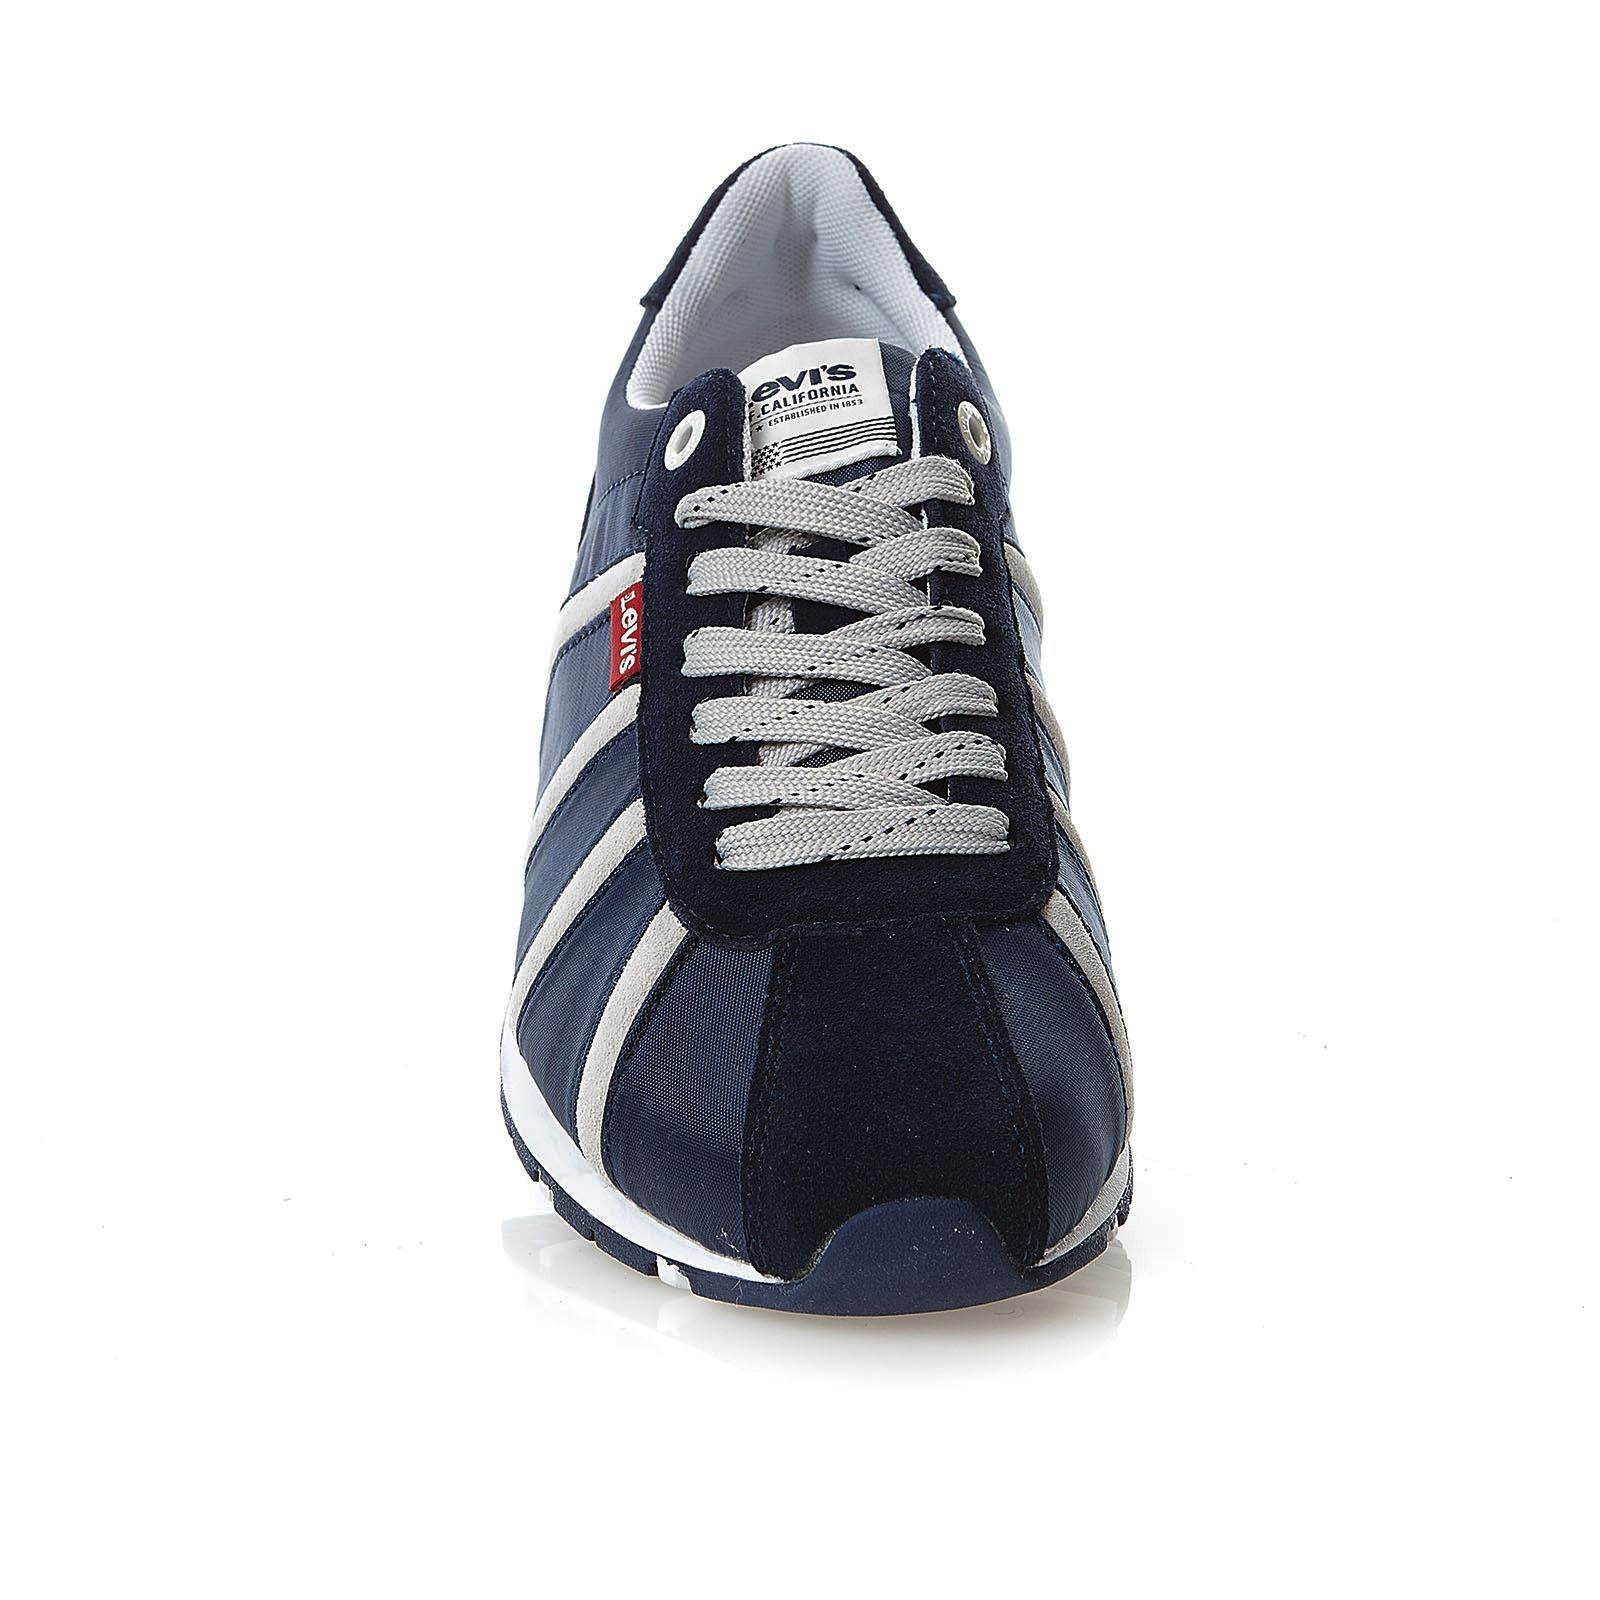 aac4ba2a14 Chaussures Levi's bleues Fashion homme wCWVUo - quit.pepinieres ...